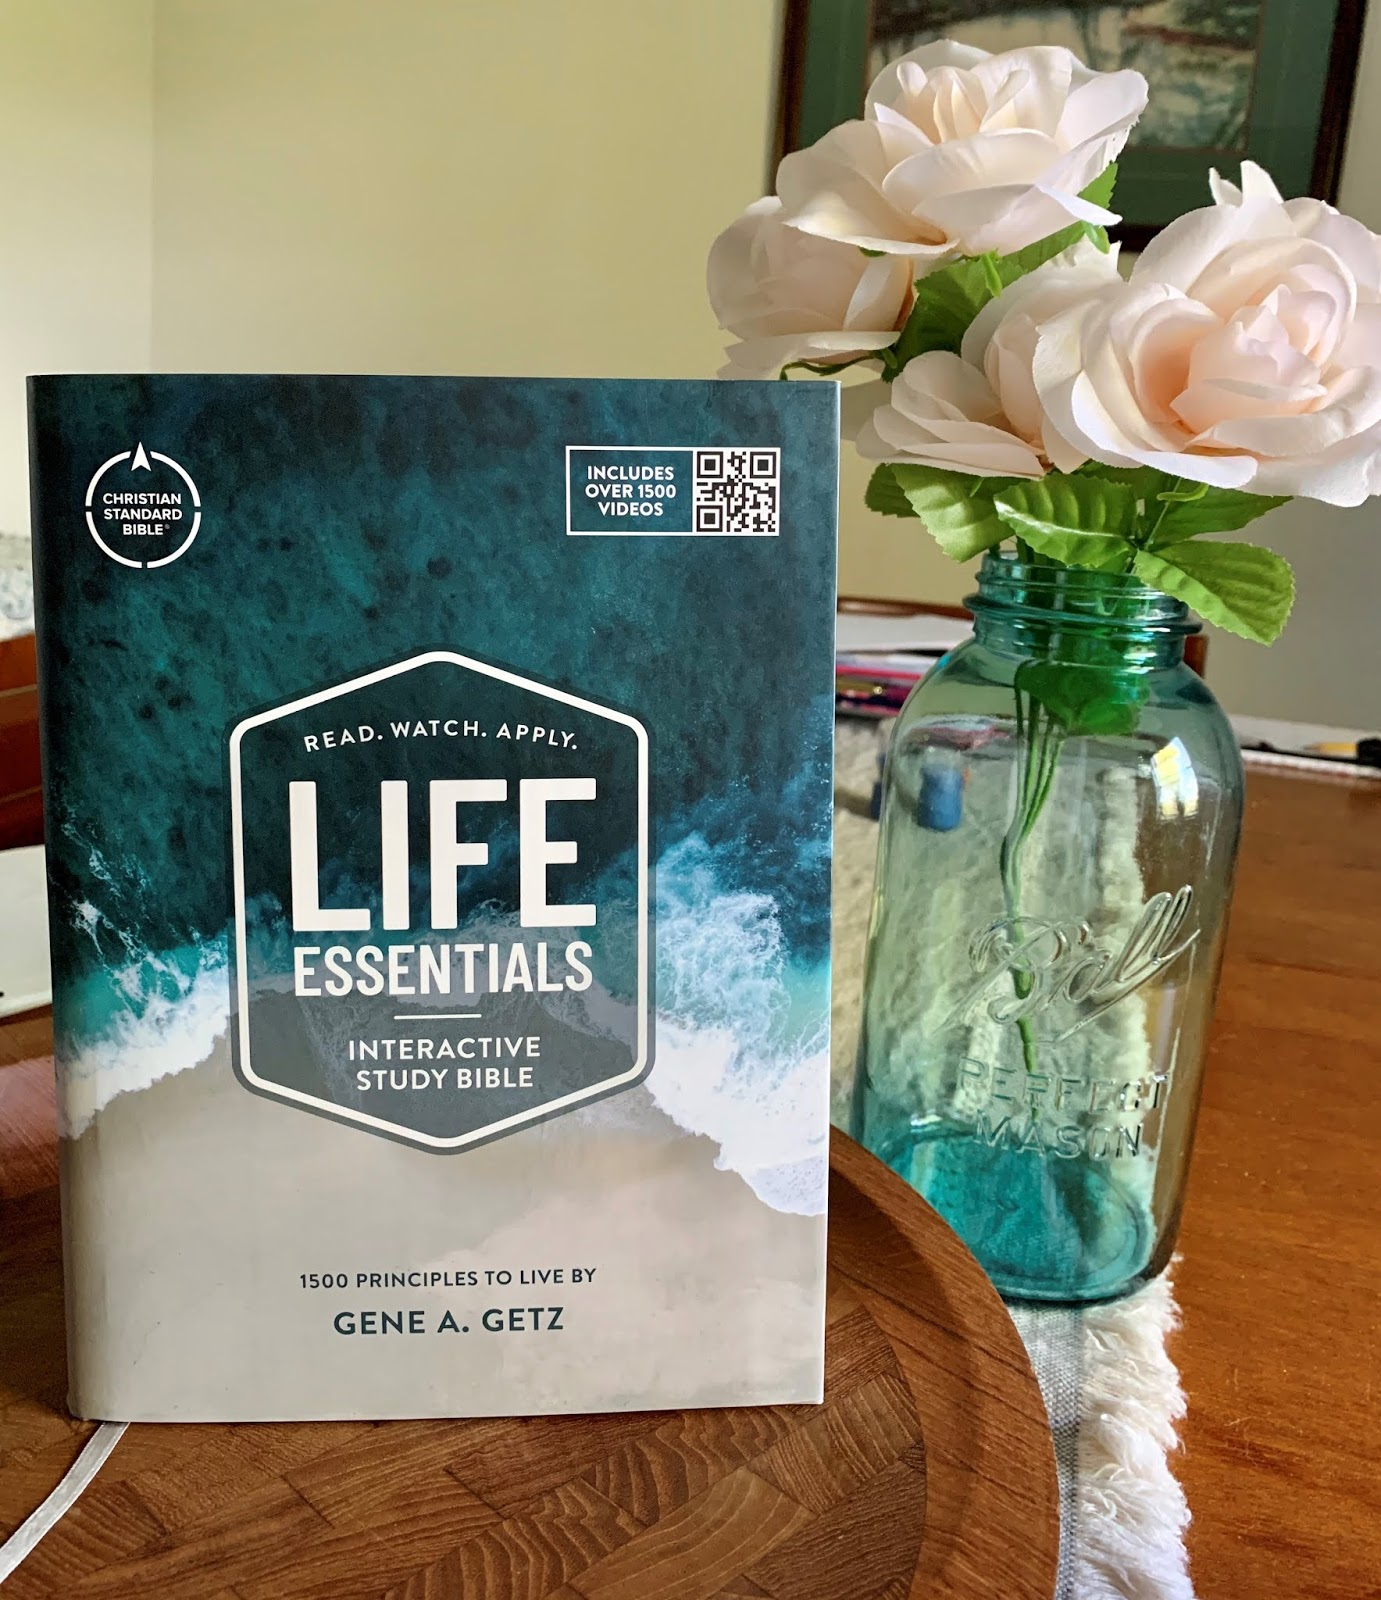 Life Essentials Interactive Study Bible Giveaway #ad